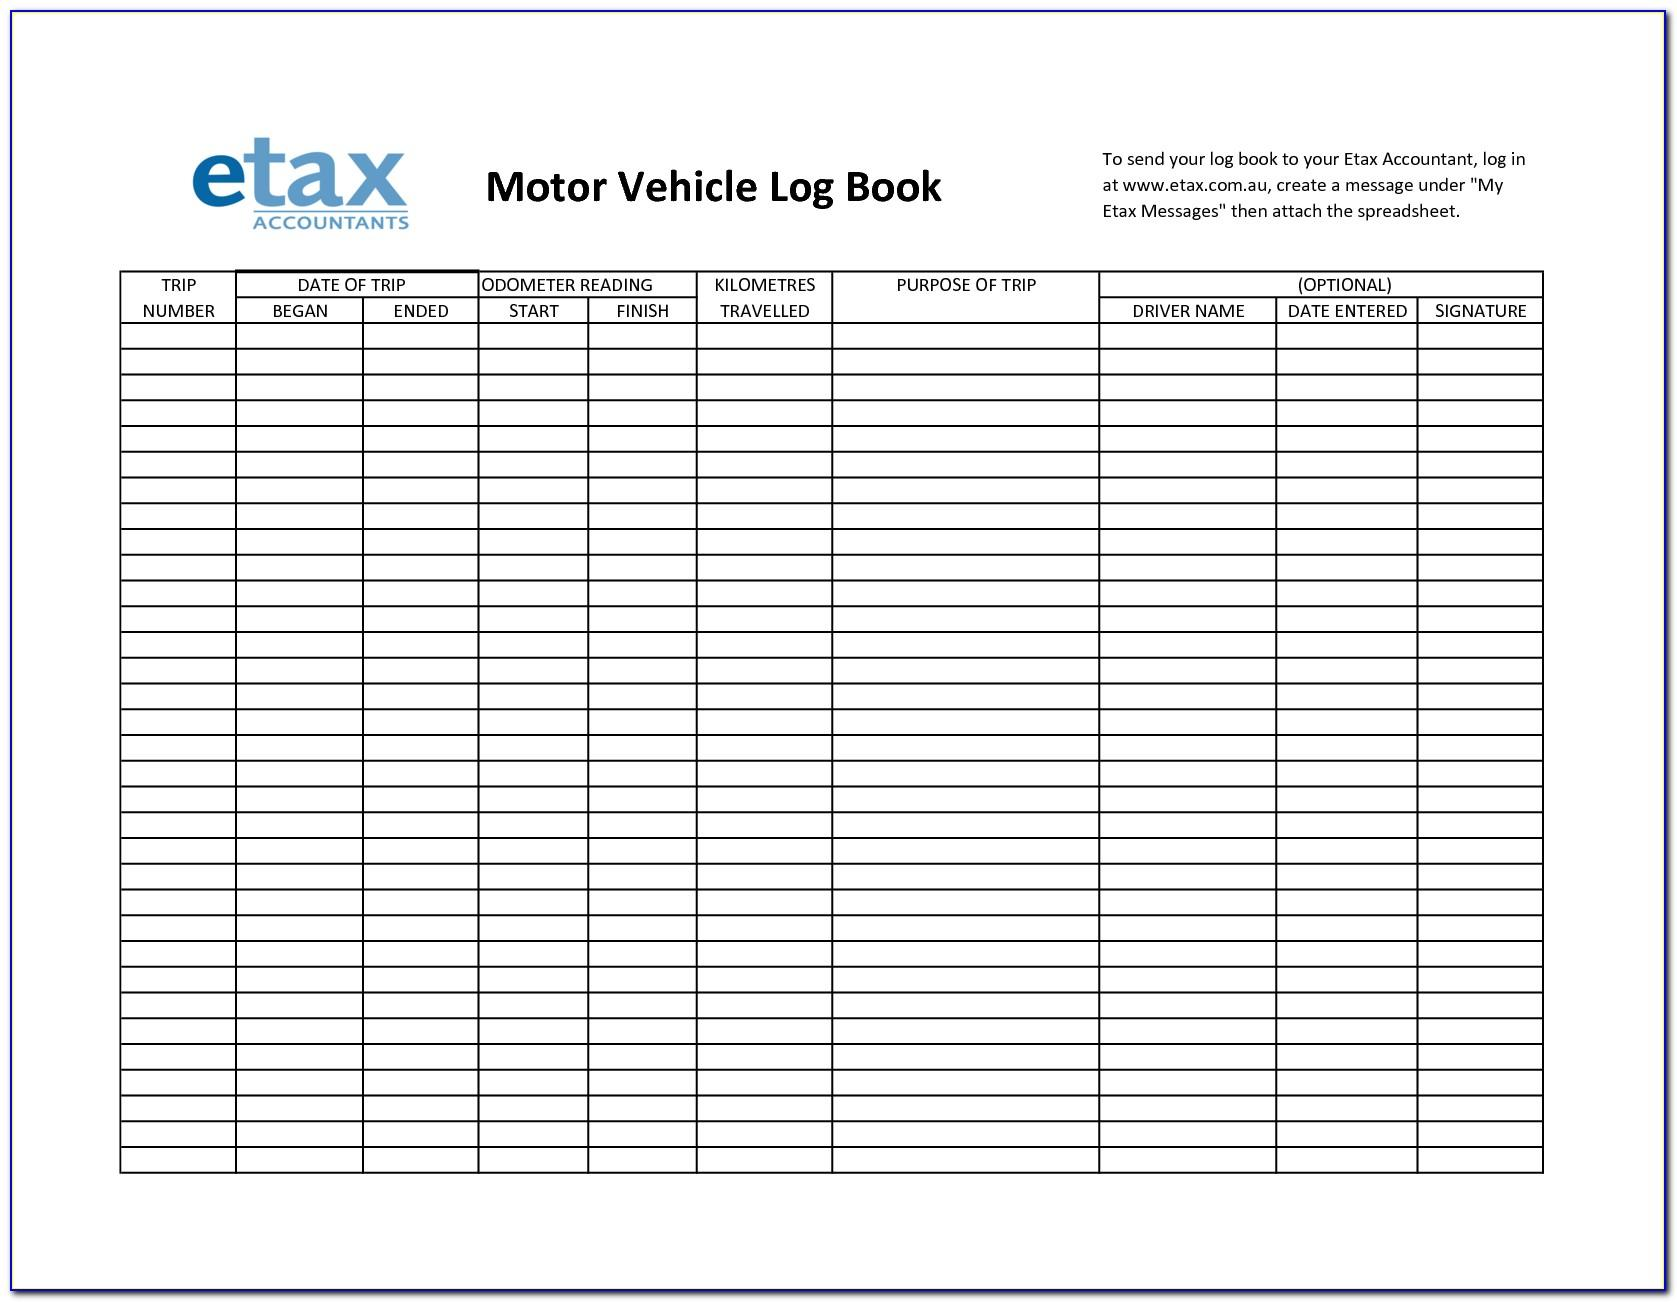 Motor Vehicle Expenses Log Book Template